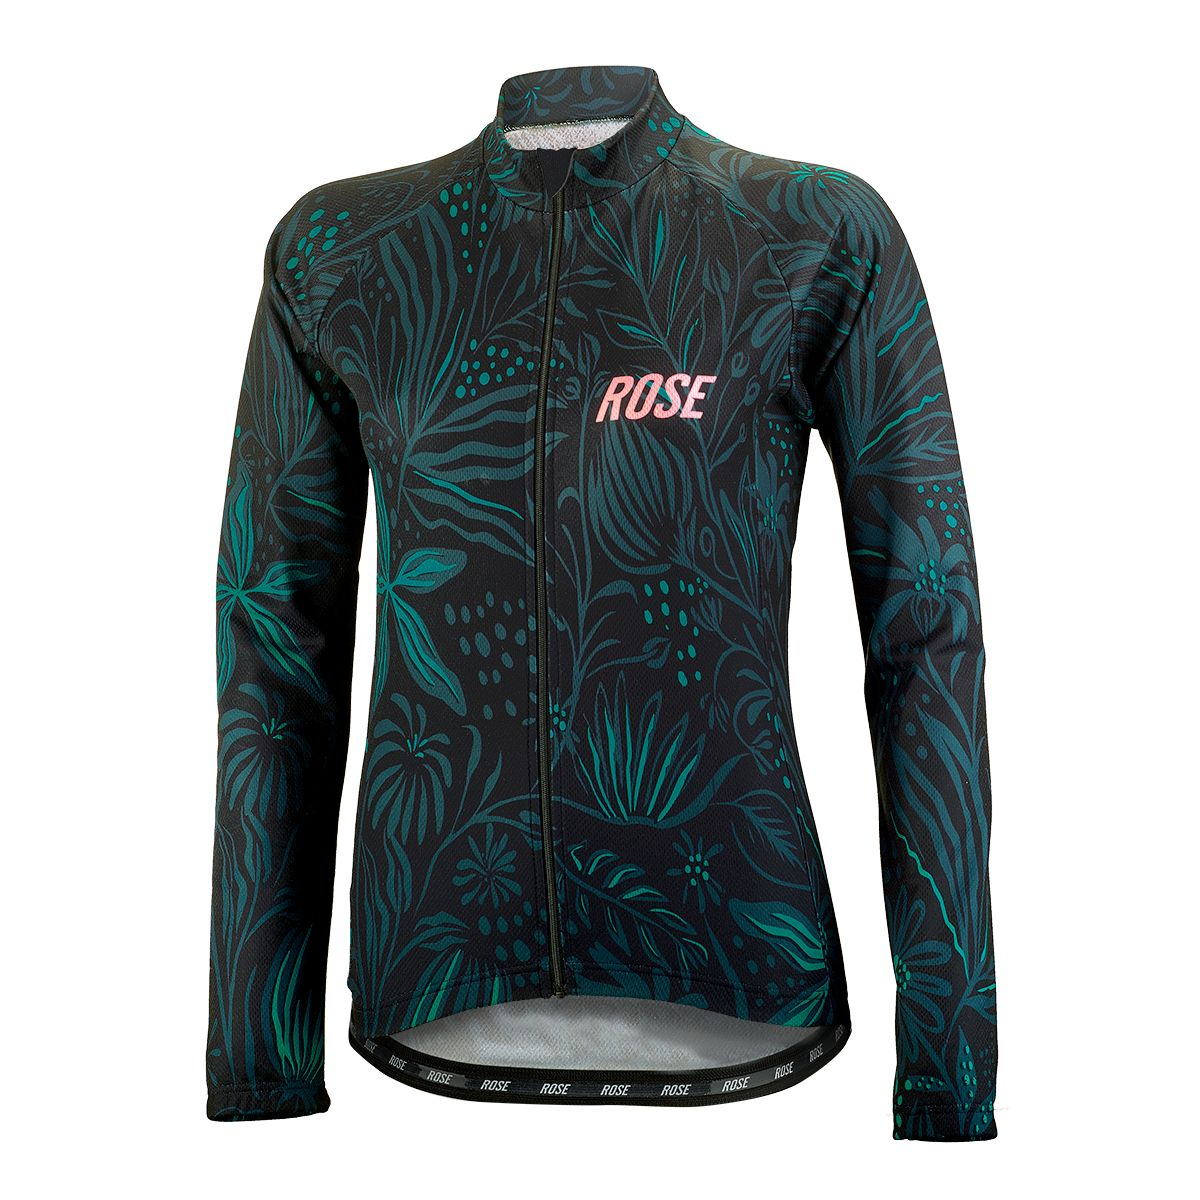 FLOWER THERMO long-sleeved jersey for women